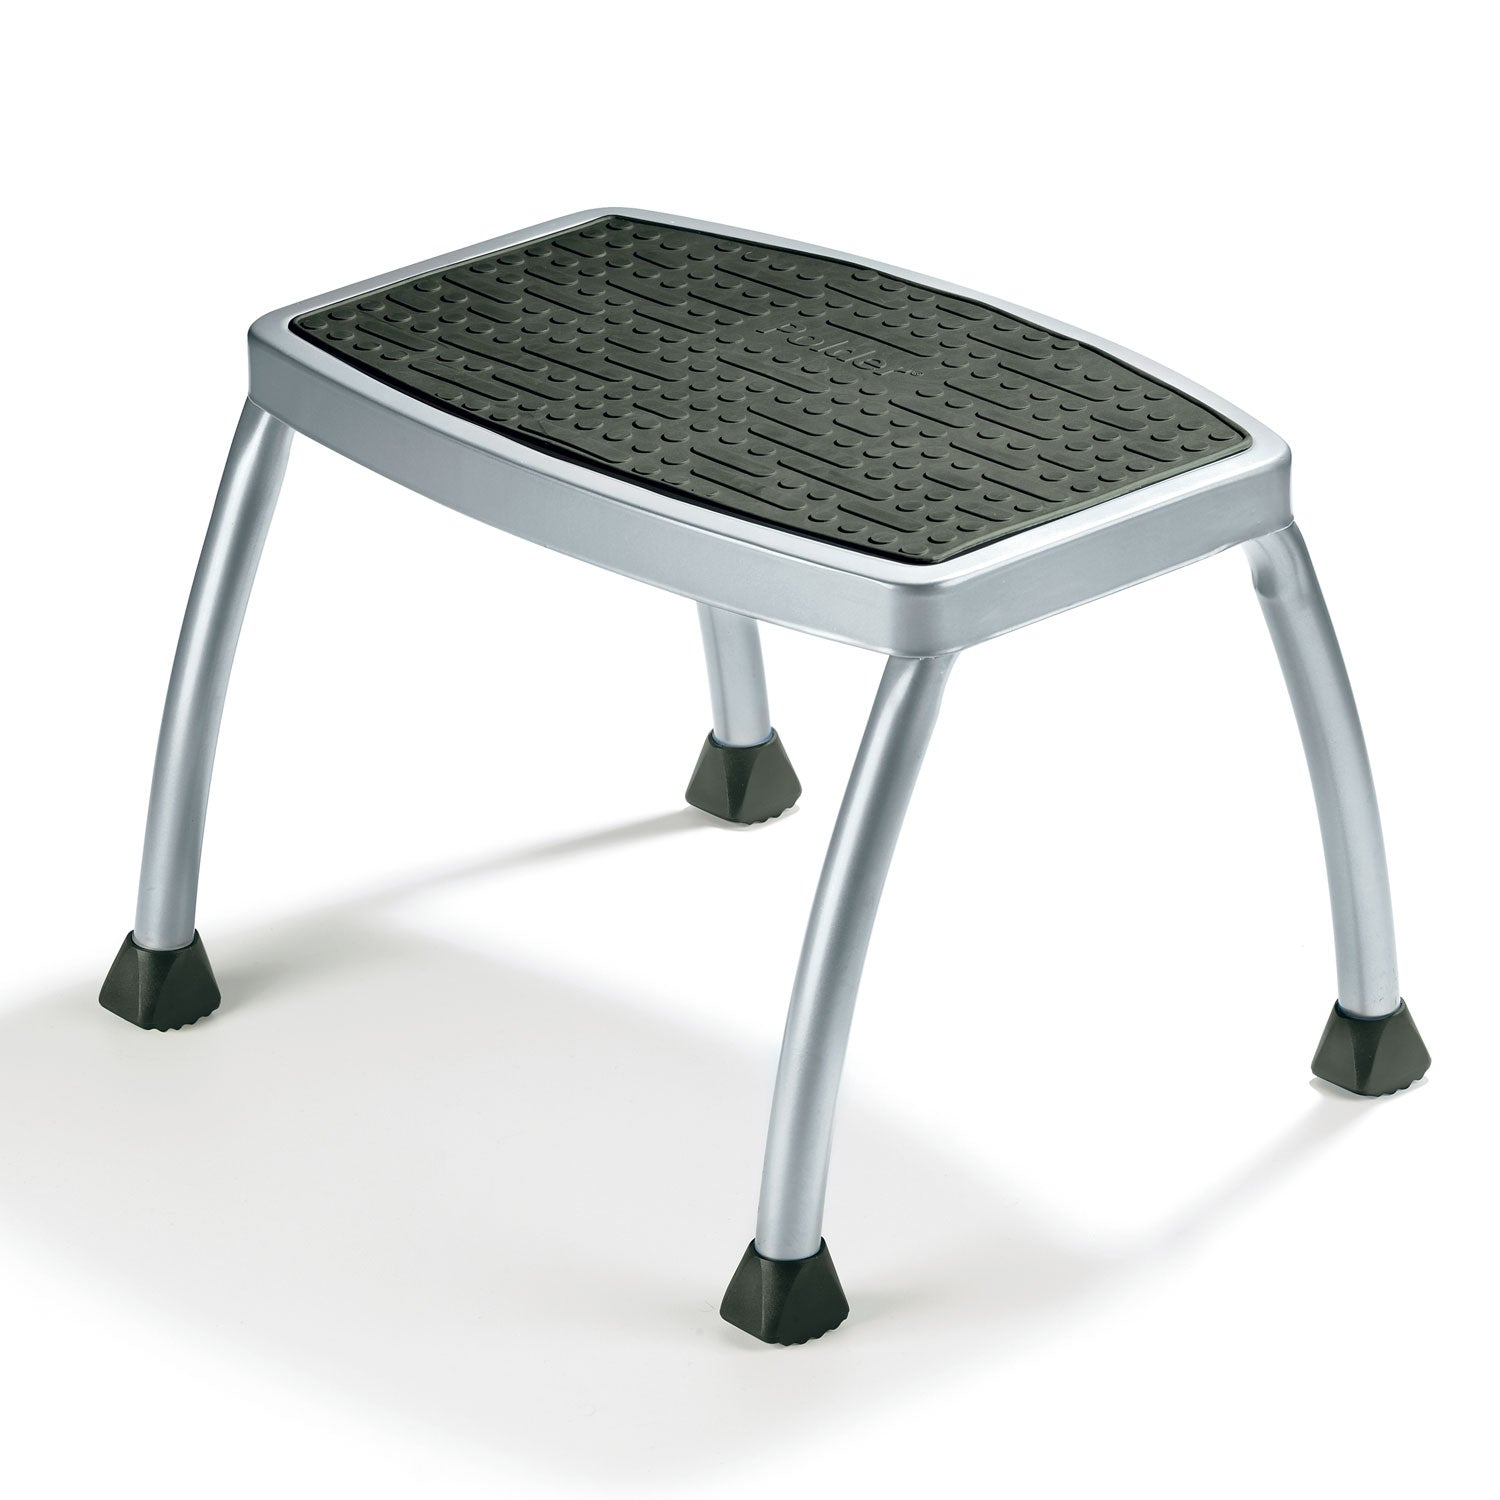 Designer Series Step Stool Replacement Feet